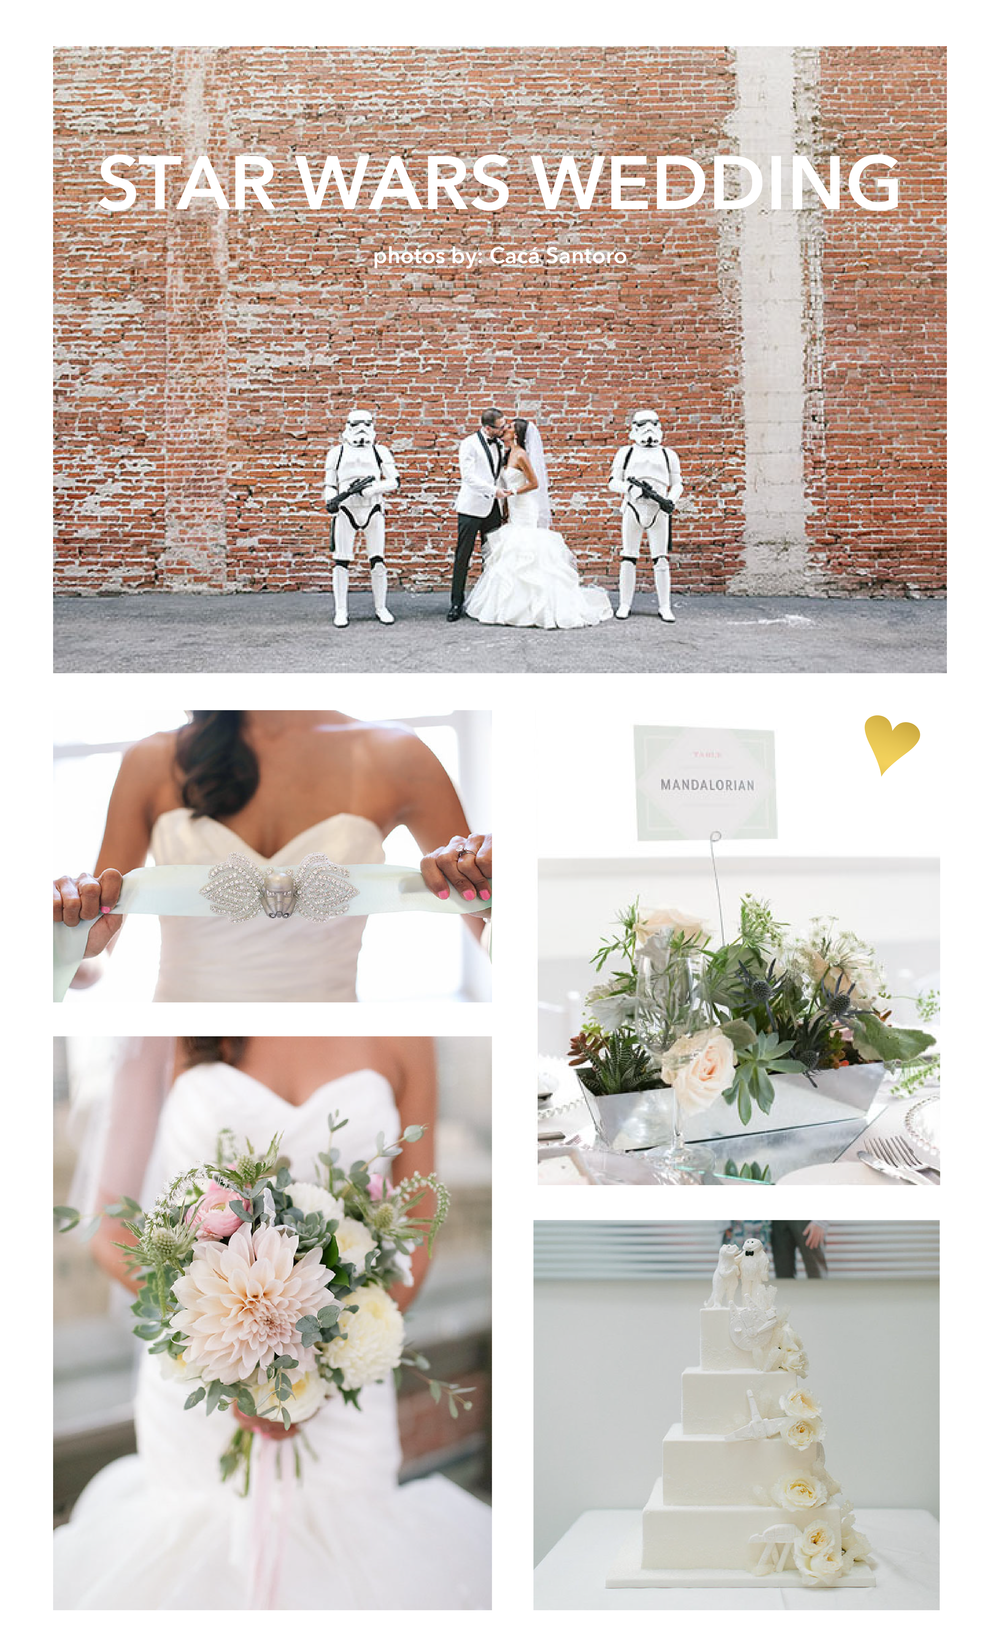 Photography:  Cacá Santoro Photography  • Venue:  loftSeven  (Los Angeles, CA)  •  in-house Event Planner: Stephanie Estes Events • Florals:  Primary Petals  • Wedding Dress:  Hayley Paige  from  Blush Bridal Couture  • Star Wars inspired belt hand made by bride • Paper goods + coasters:  MaeMae & Co.  • Cake:  The Buttered End  • Stormtroopers: Mark Edwards & Michael Bender of  the 501st Legion